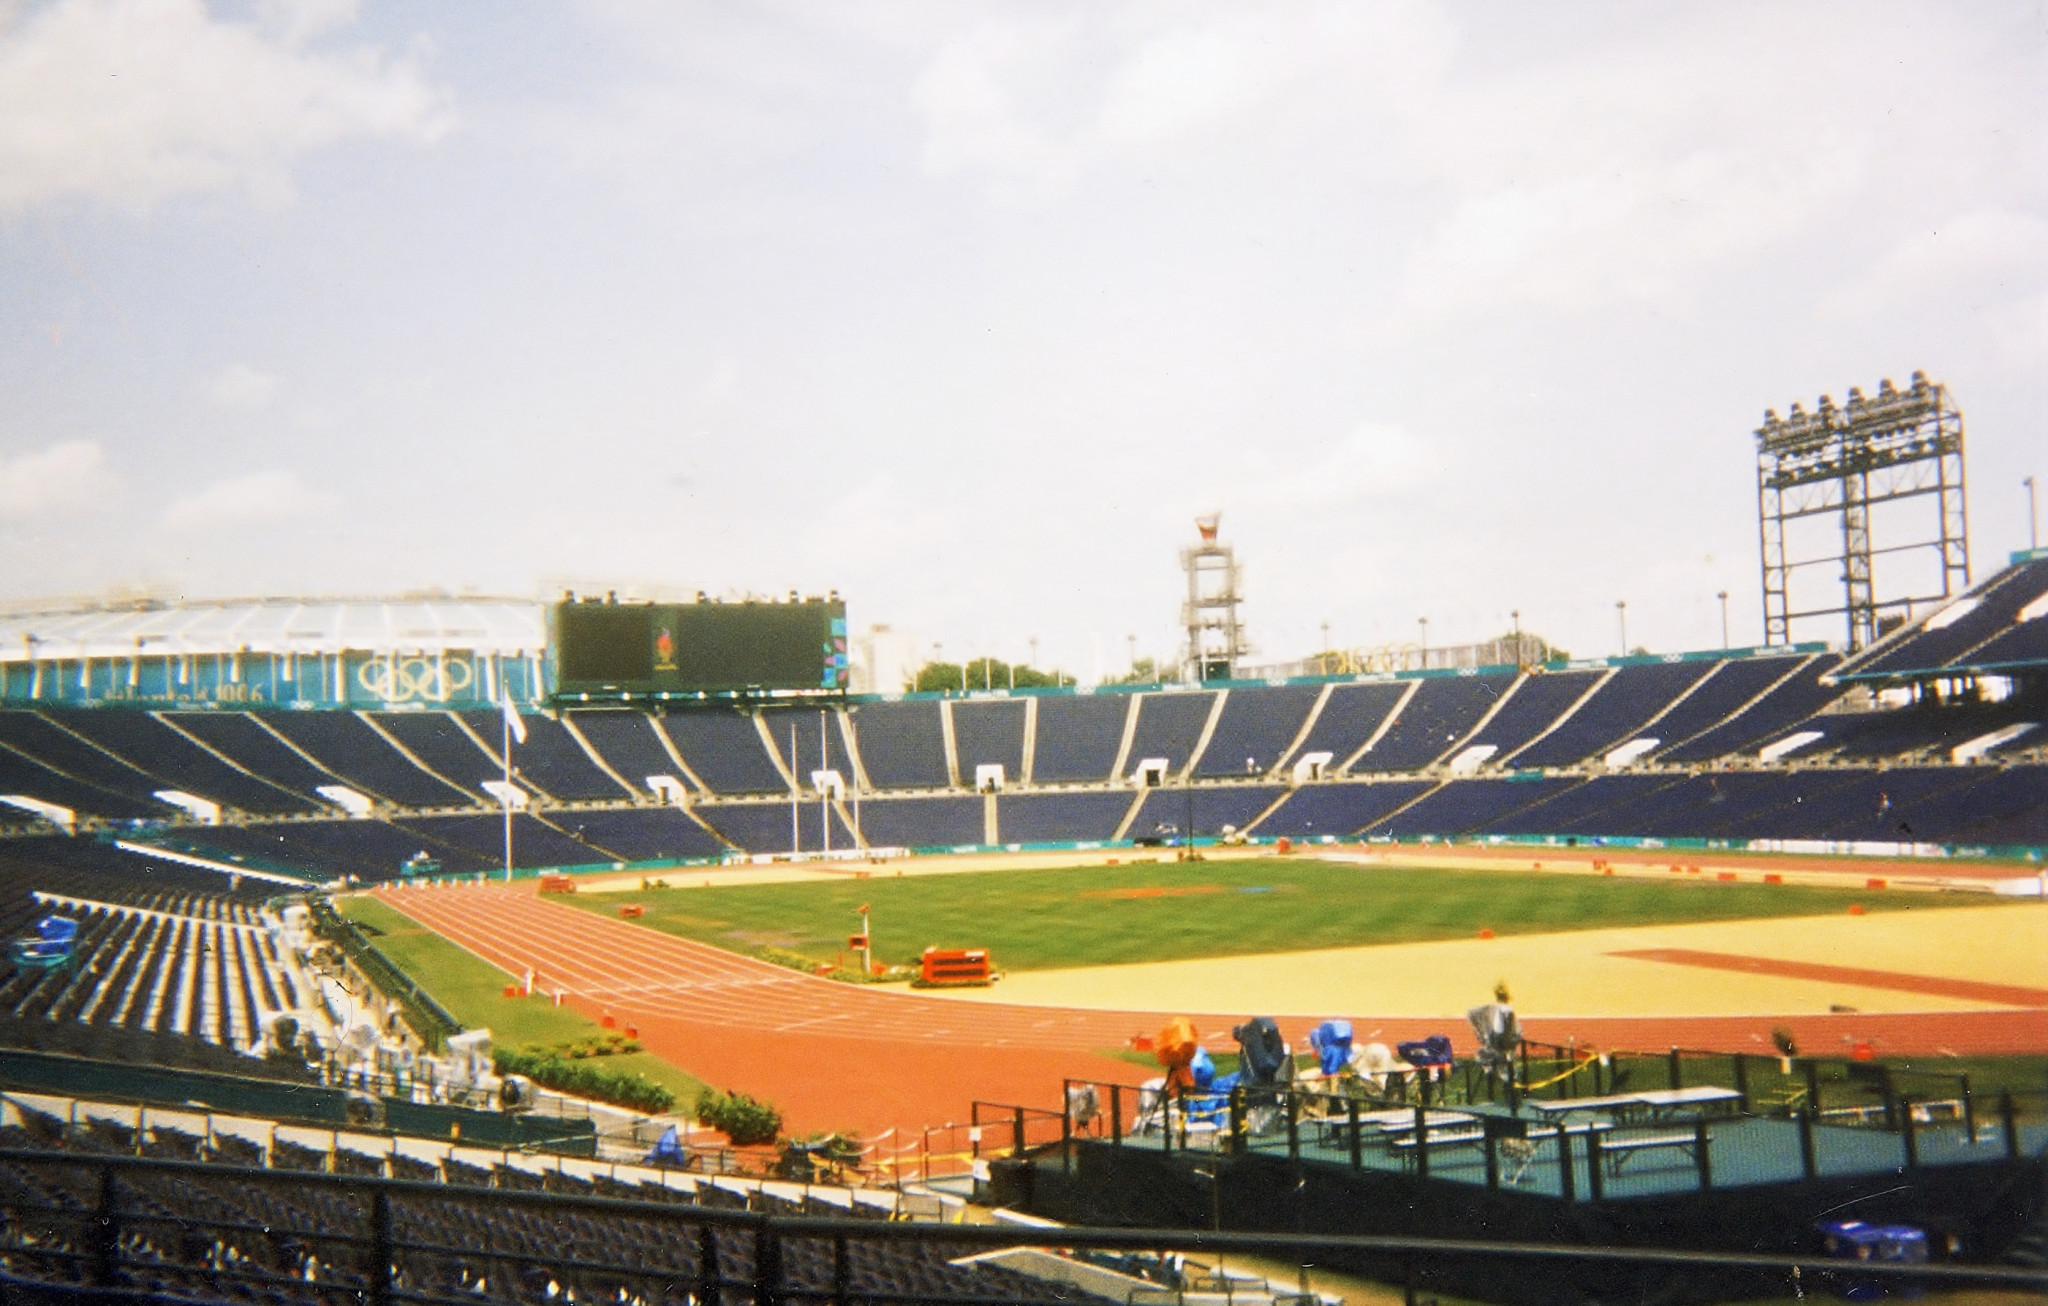 Centennial Olympic Stadium, as it was for the Olympics  ©Philip Barker